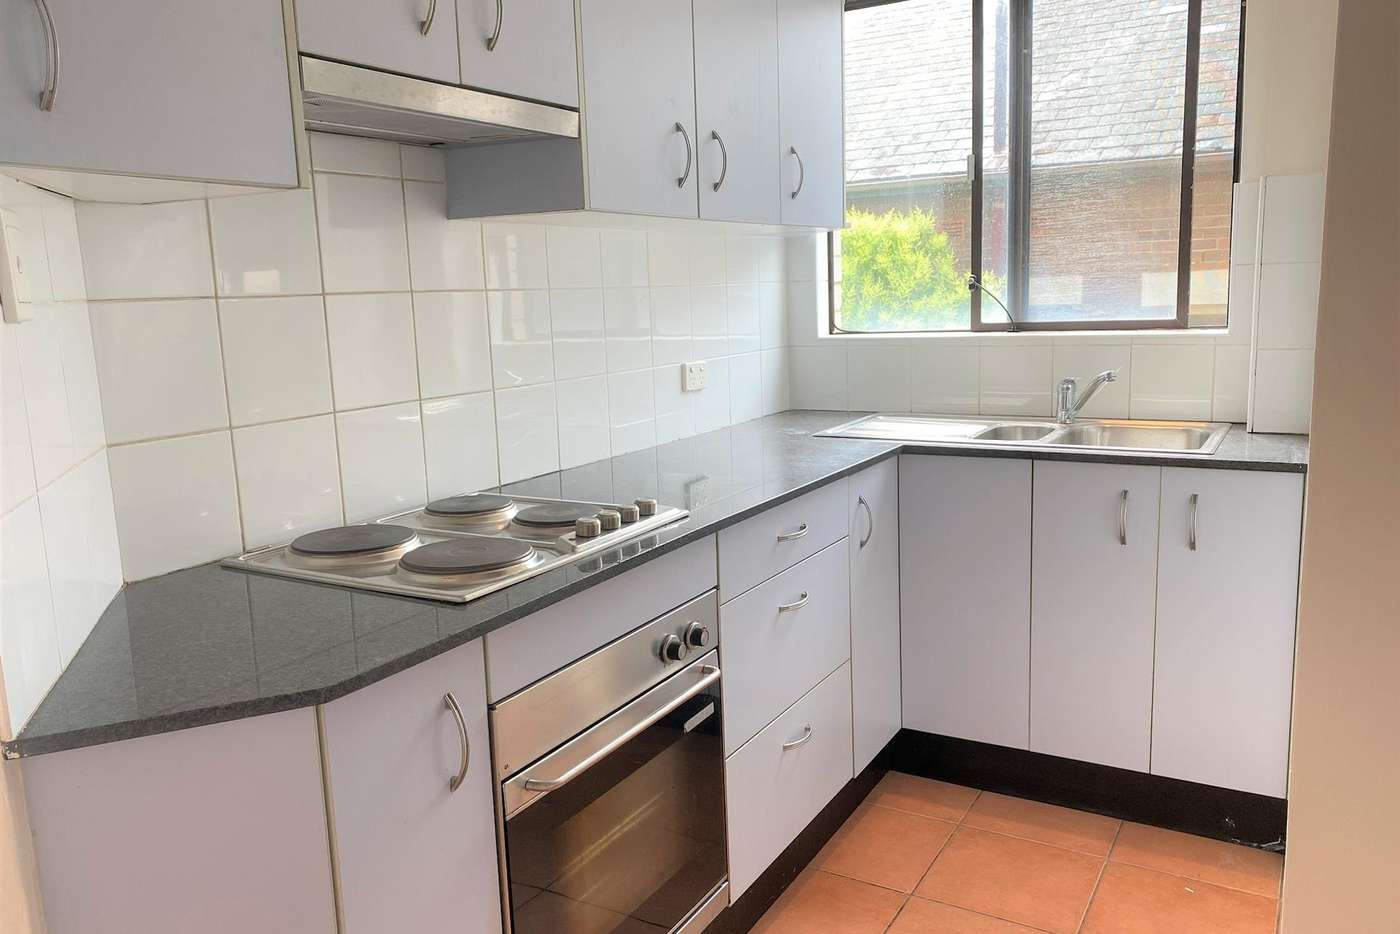 Seventh view of Homely apartment listing, 5/52-54 Cowper Street, Randwick NSW 2031